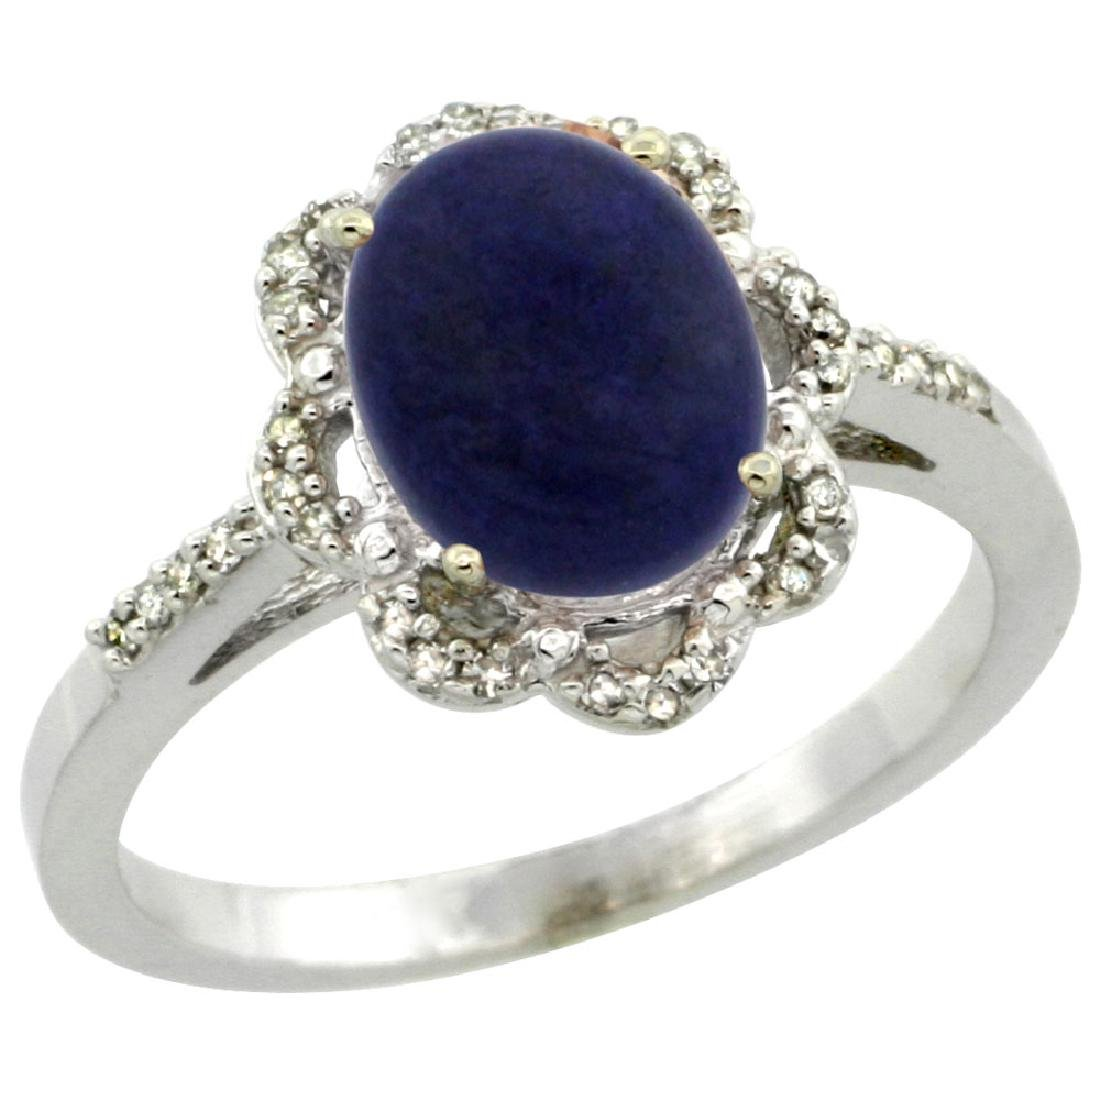 Natural 1.89 ctw Lapis & Diamond Engagement Ring 14K